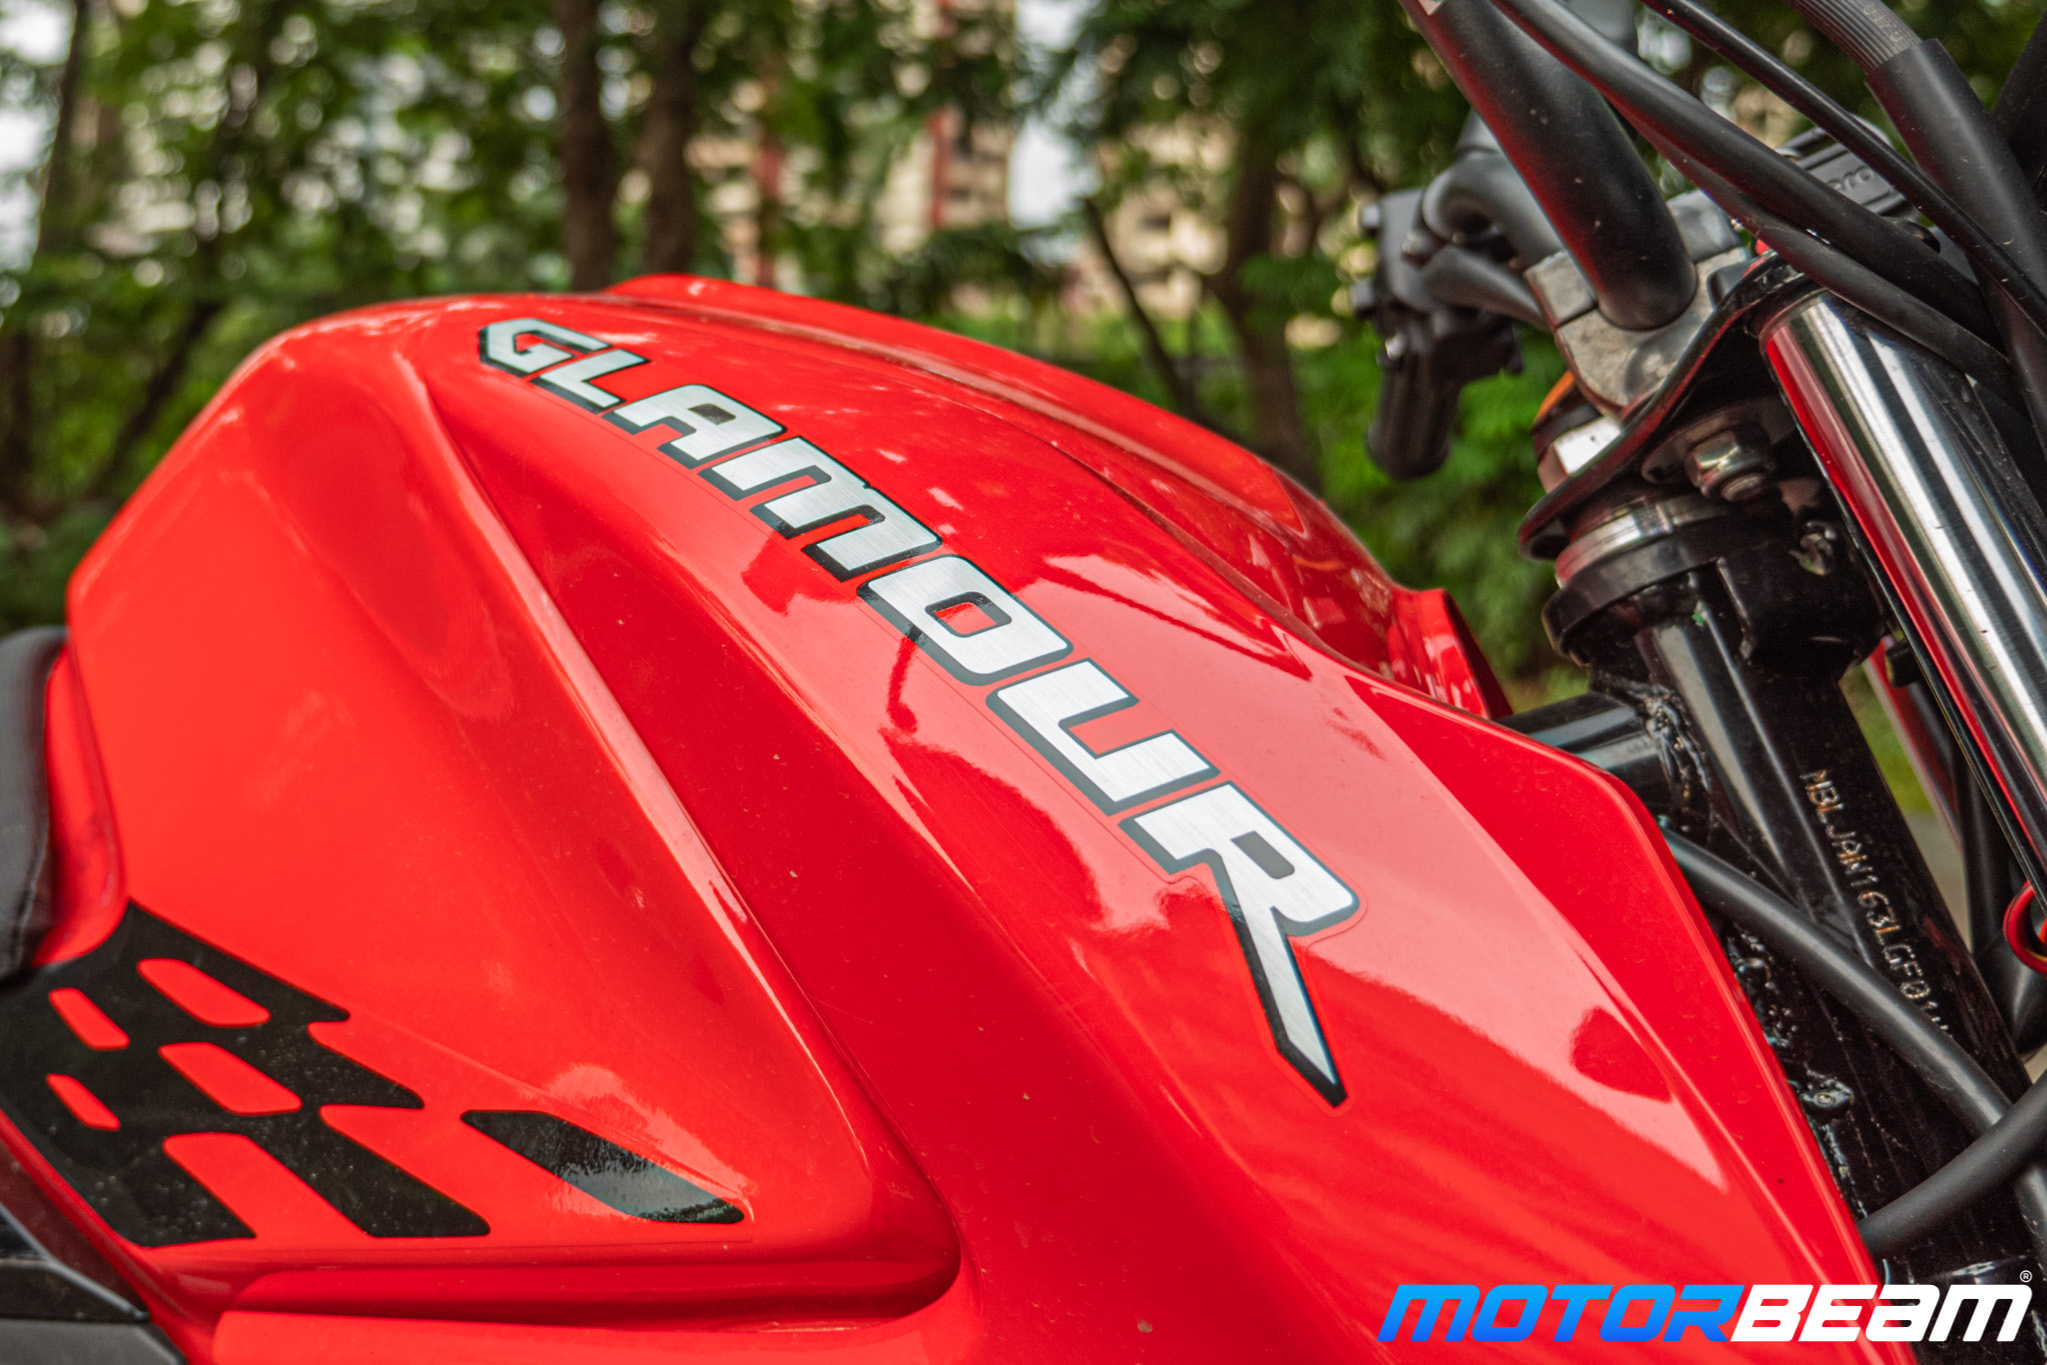 2020 Hero Glamour 125 Review 16